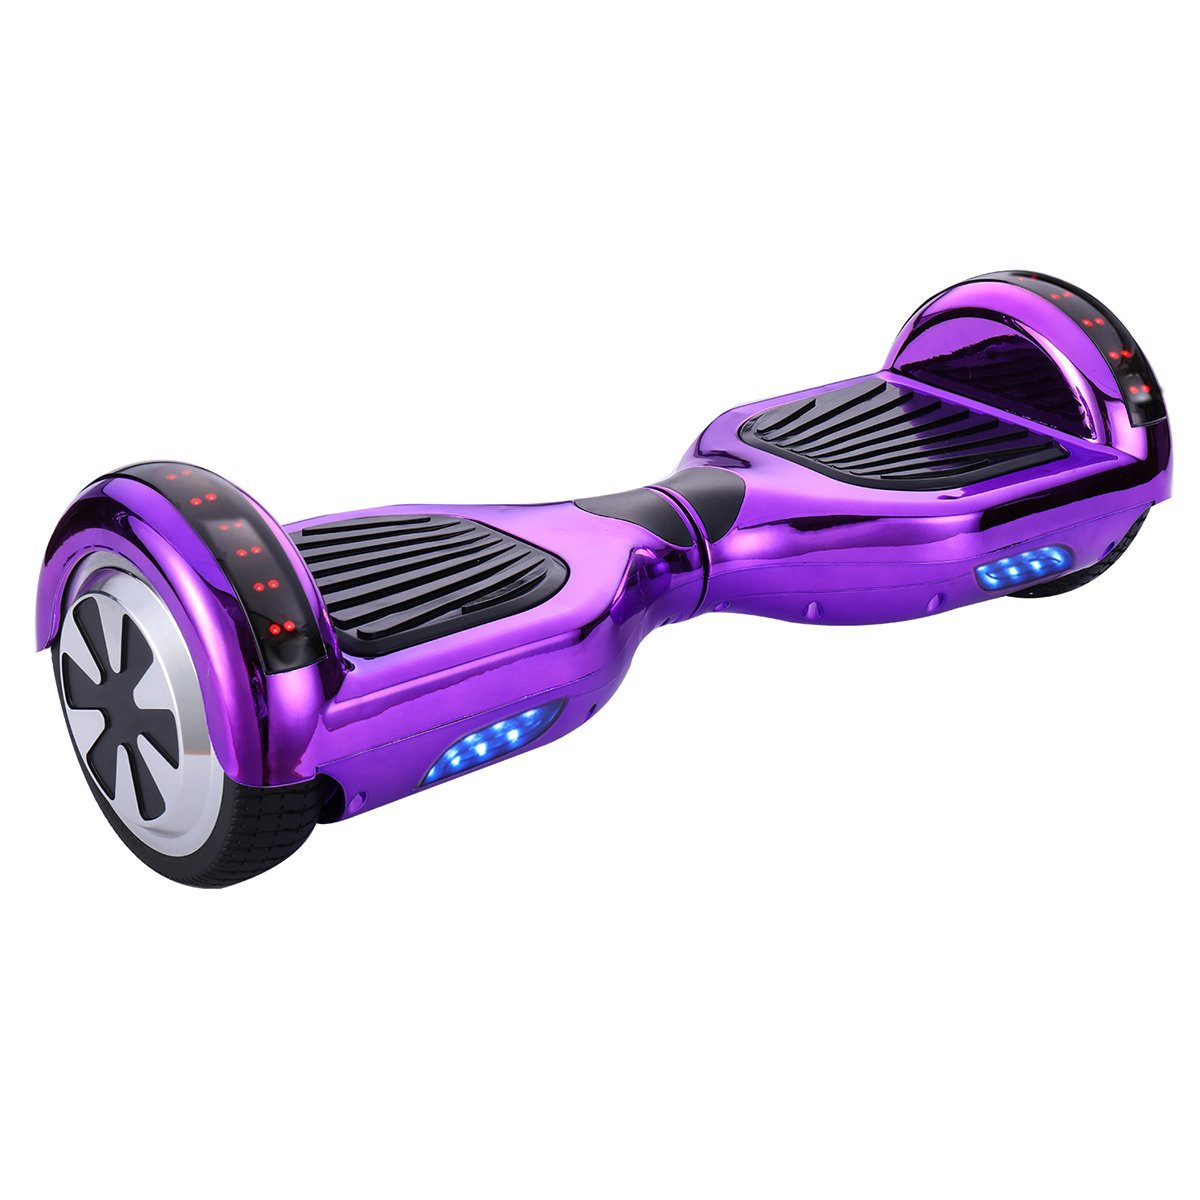 CXInWalk Hoverboard UL 2272 Certified 6.5'' Bluetooth Speaker with LED Light Self Balancing Wheel Electric Scooter, Chrome Purple by CXINWALK